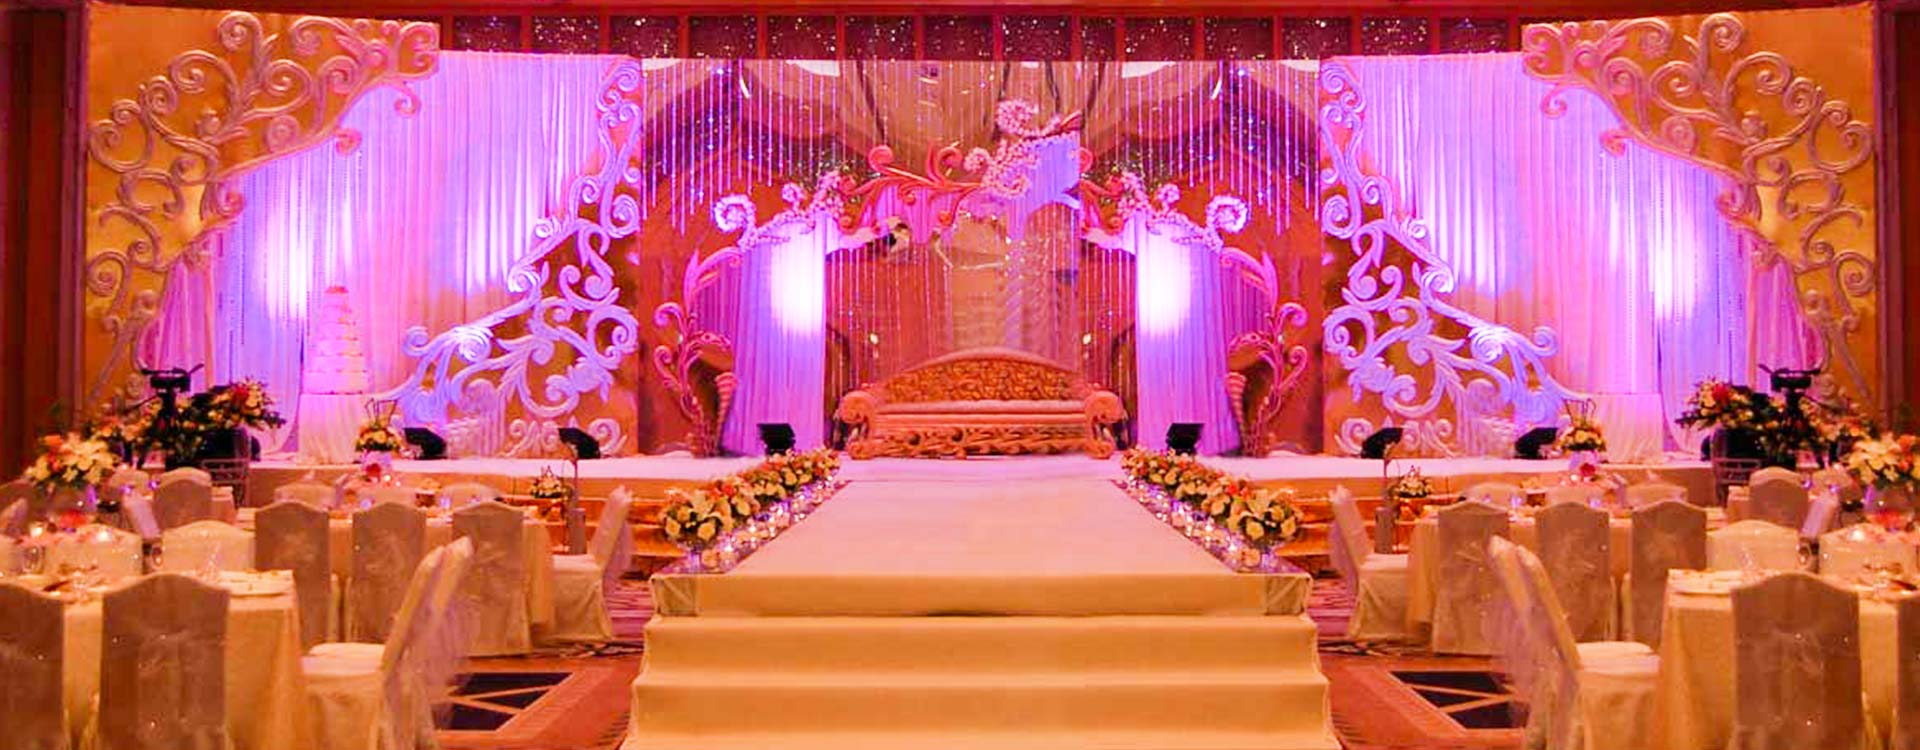 Wedding Stages Services Sharjah, Event Stage Services Sharjah Ajman